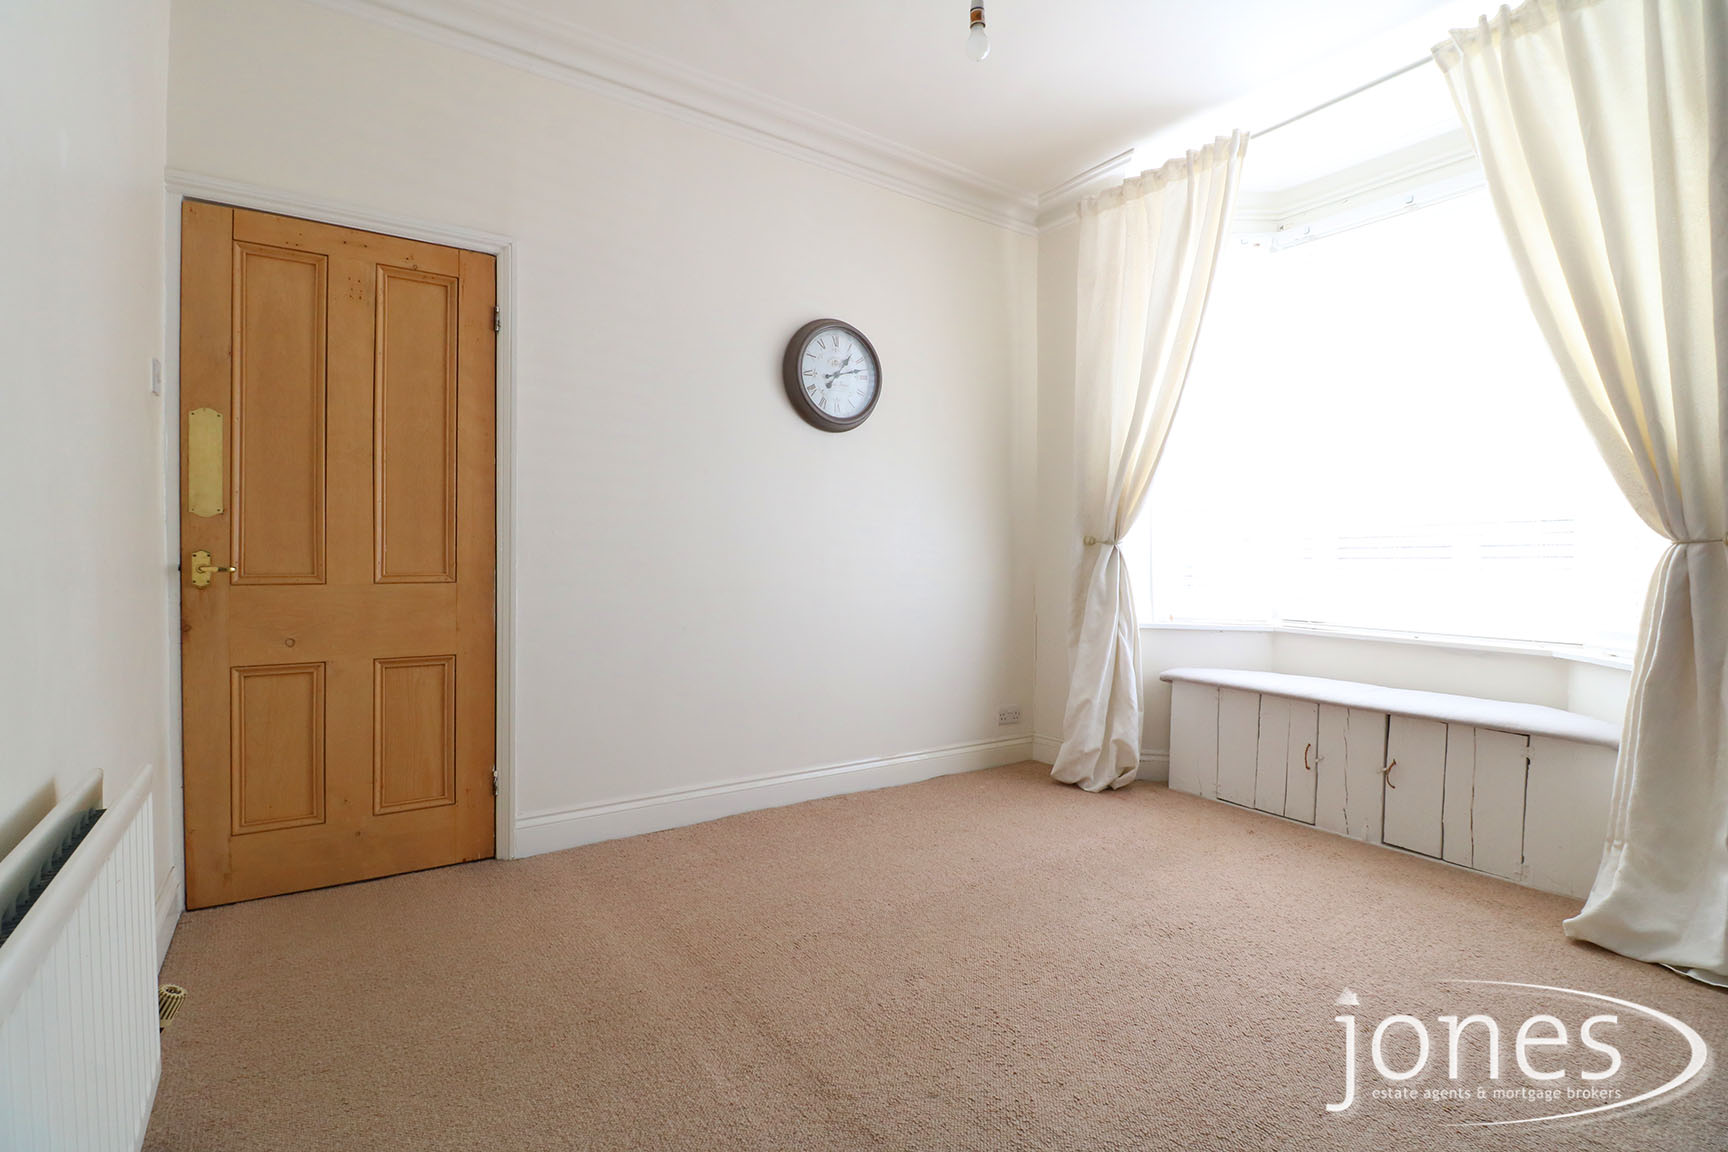 Home for Sale Let - Photo 03 Station Road Norton Stockton on Tees TS20 1PE